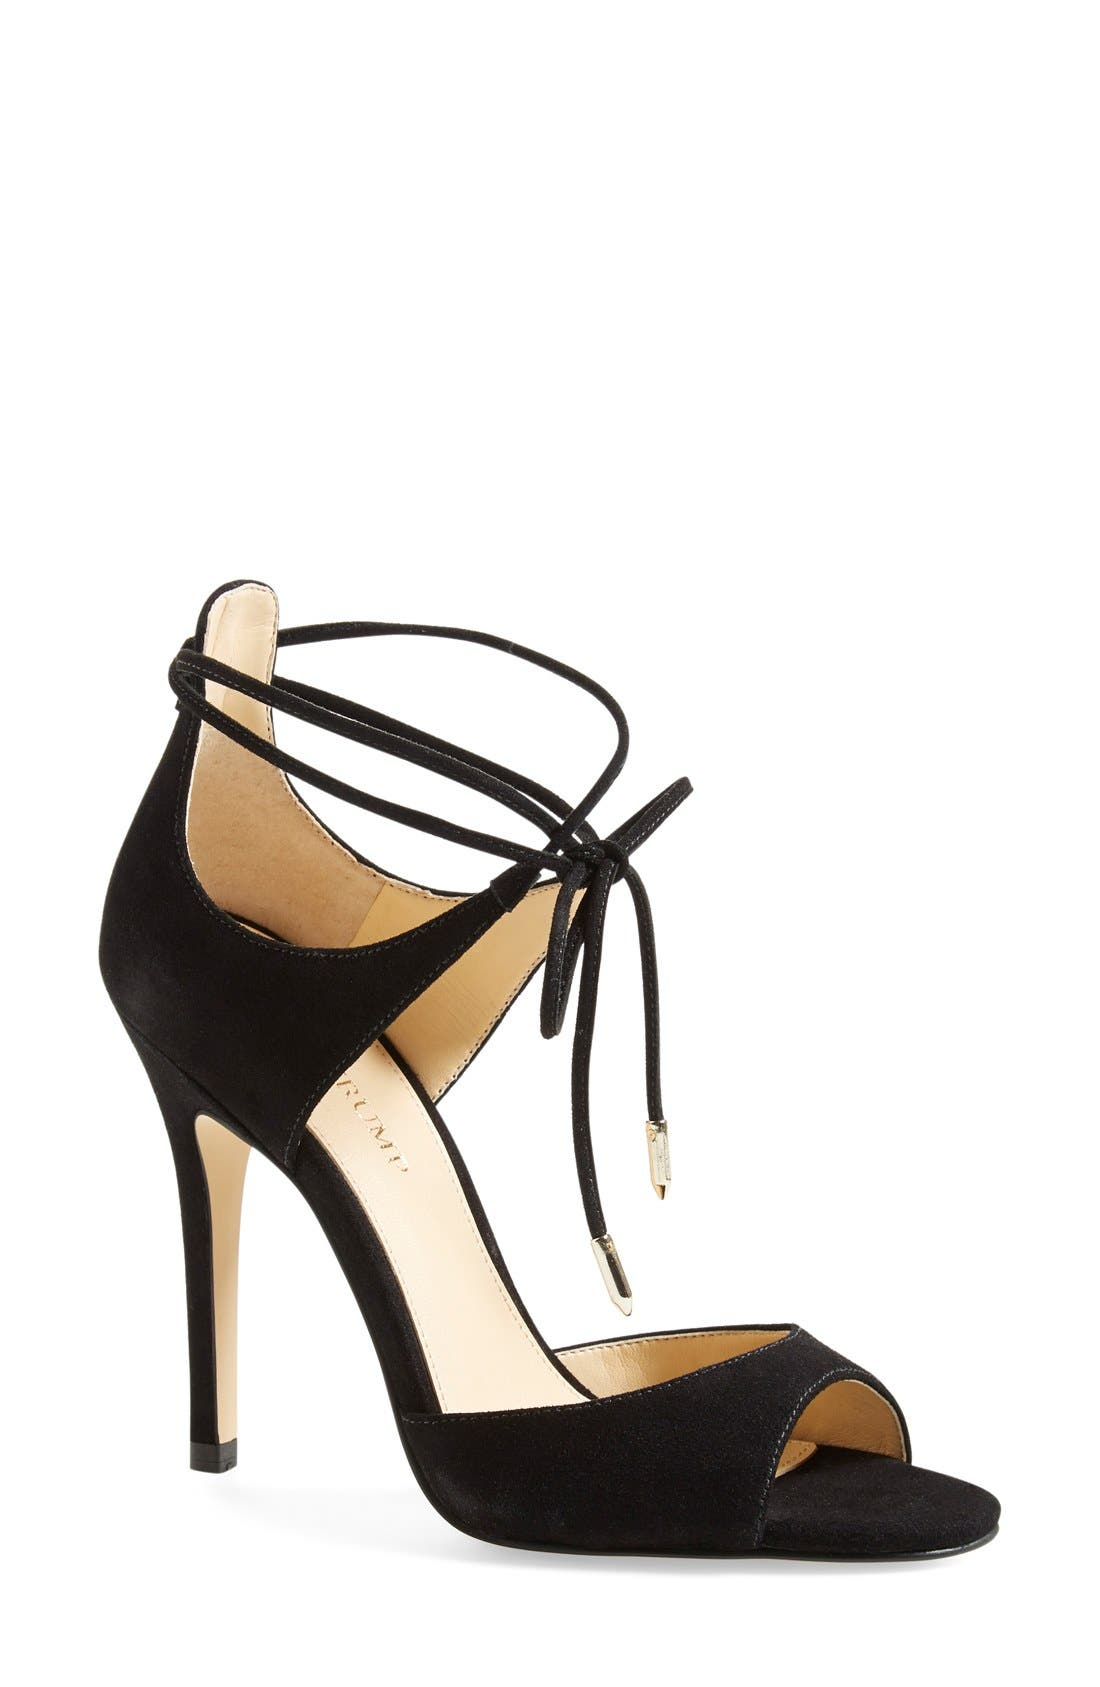 'Holidae' d'Orsay Sandal,                         Main,                         color, 001